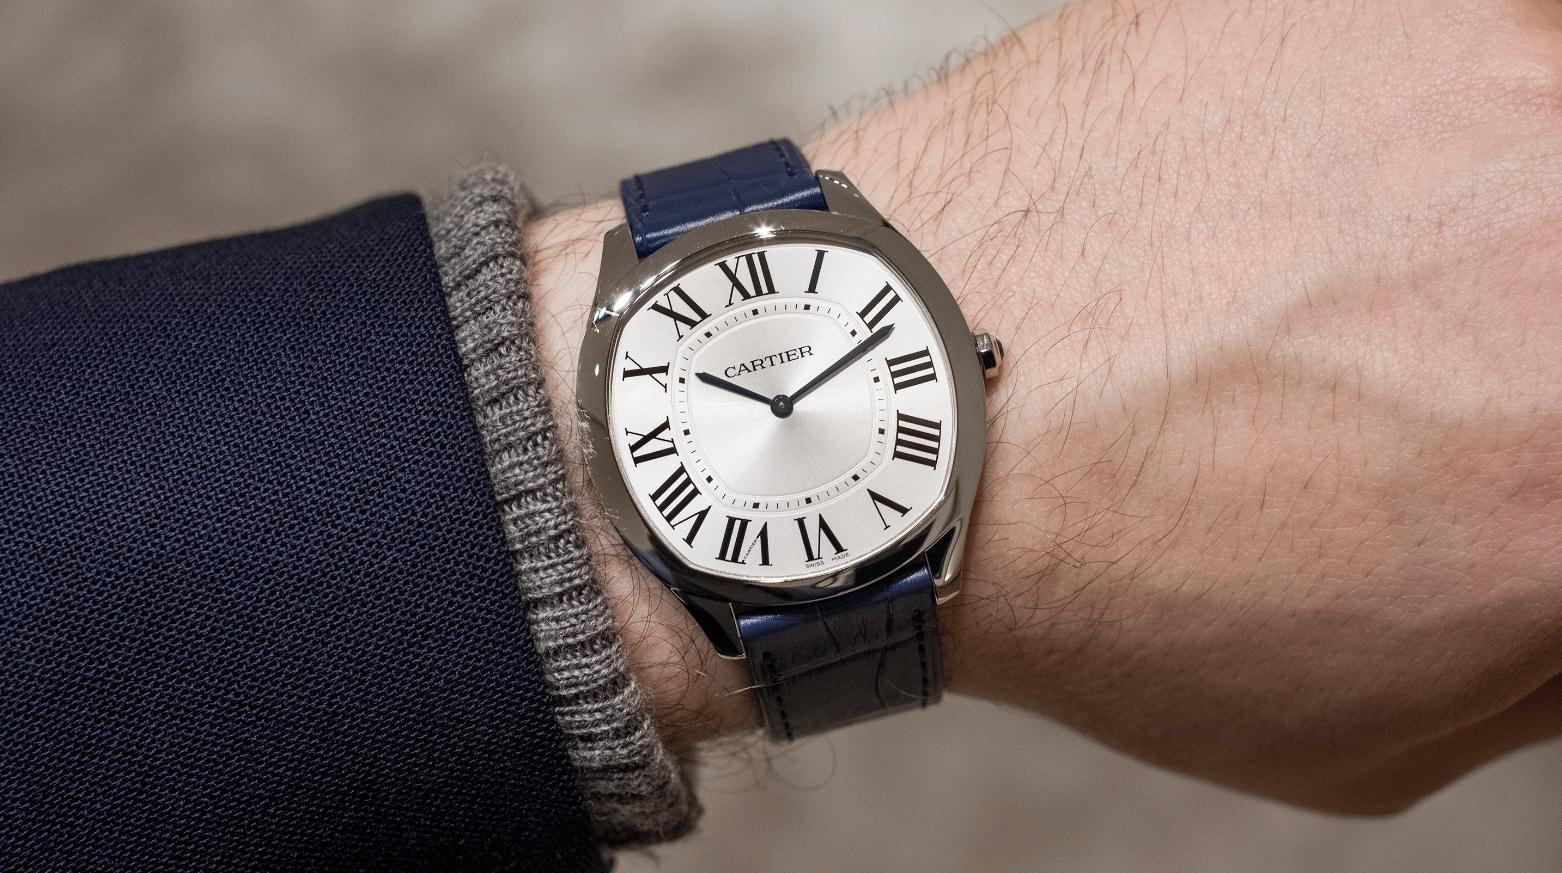 The comfortable copy Drive De Cartier WSNM0011 watches are worth for men.